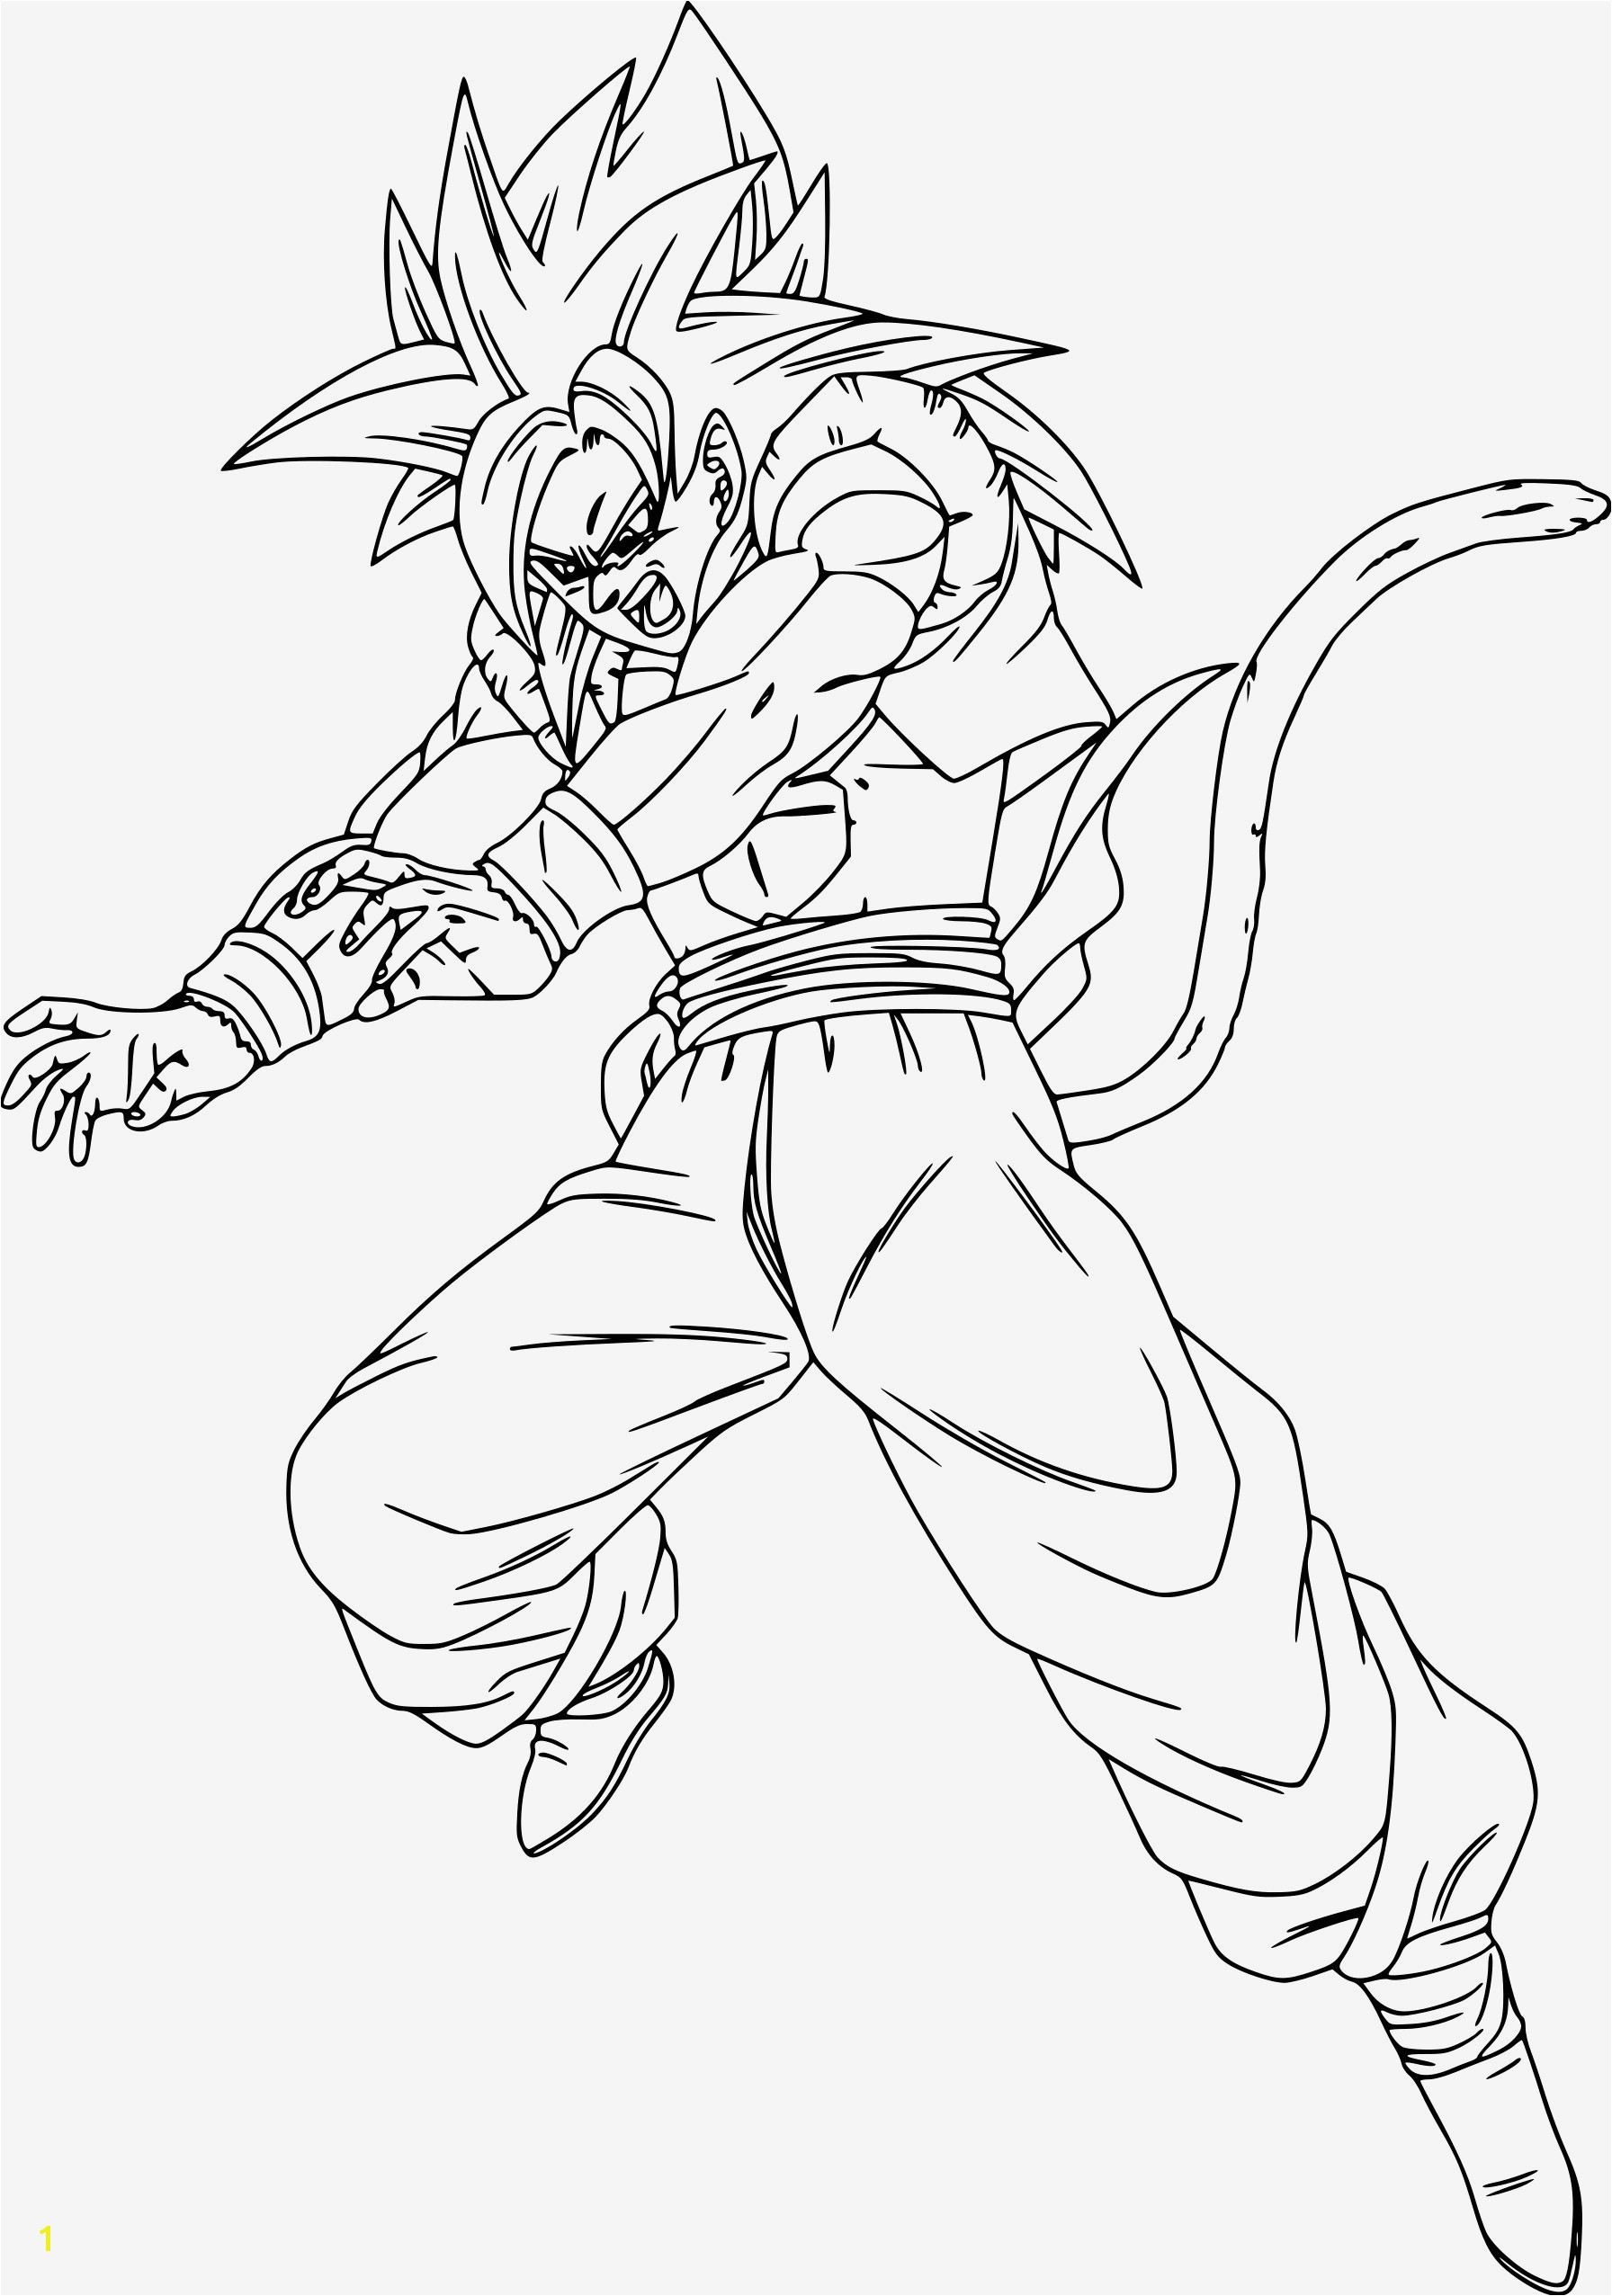 Unique Coloriage Ve a Super Sayen In Coloriage Dragon Ball Cool Dragon Ball Z Coloring Pages Ve